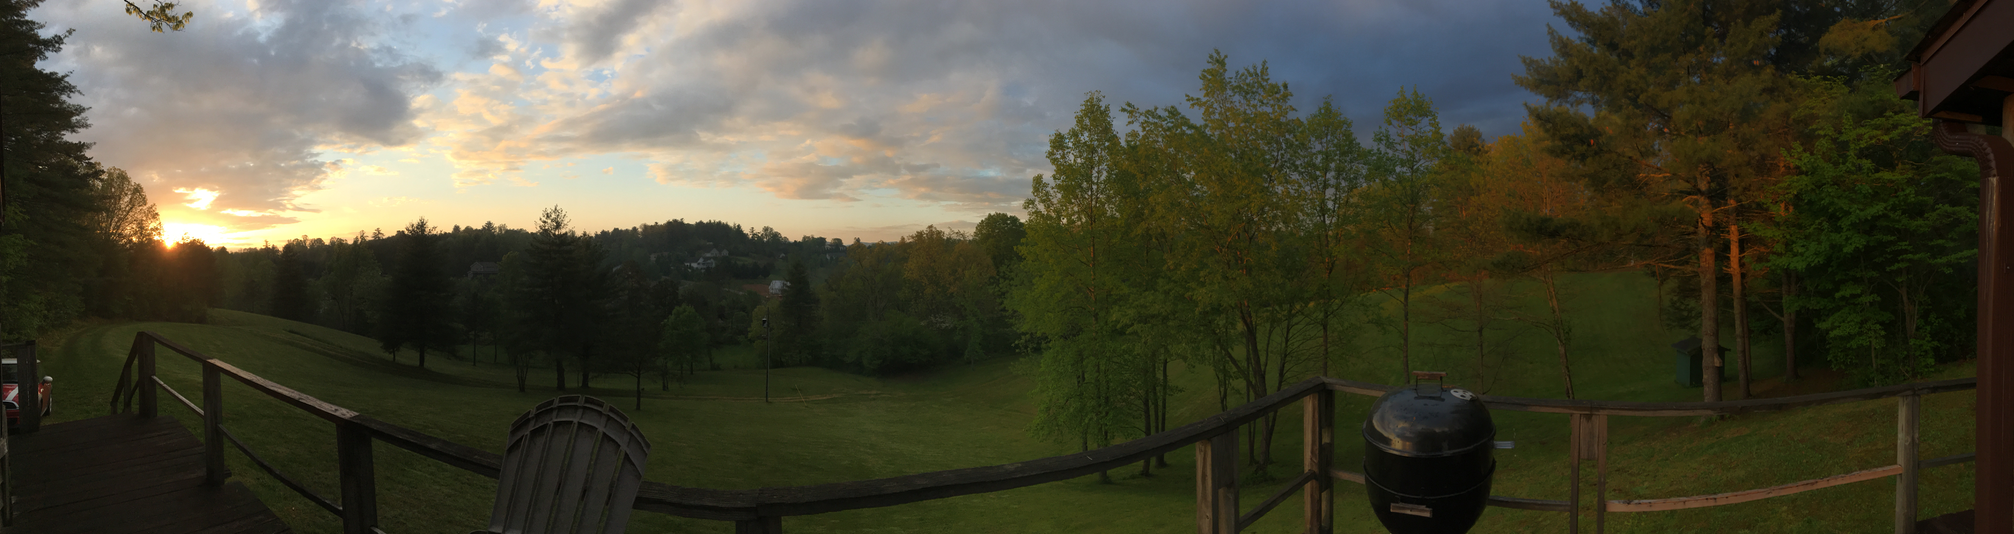 Panorama off the deck at North Carolina at sunset. Original scene where the memory takes place.